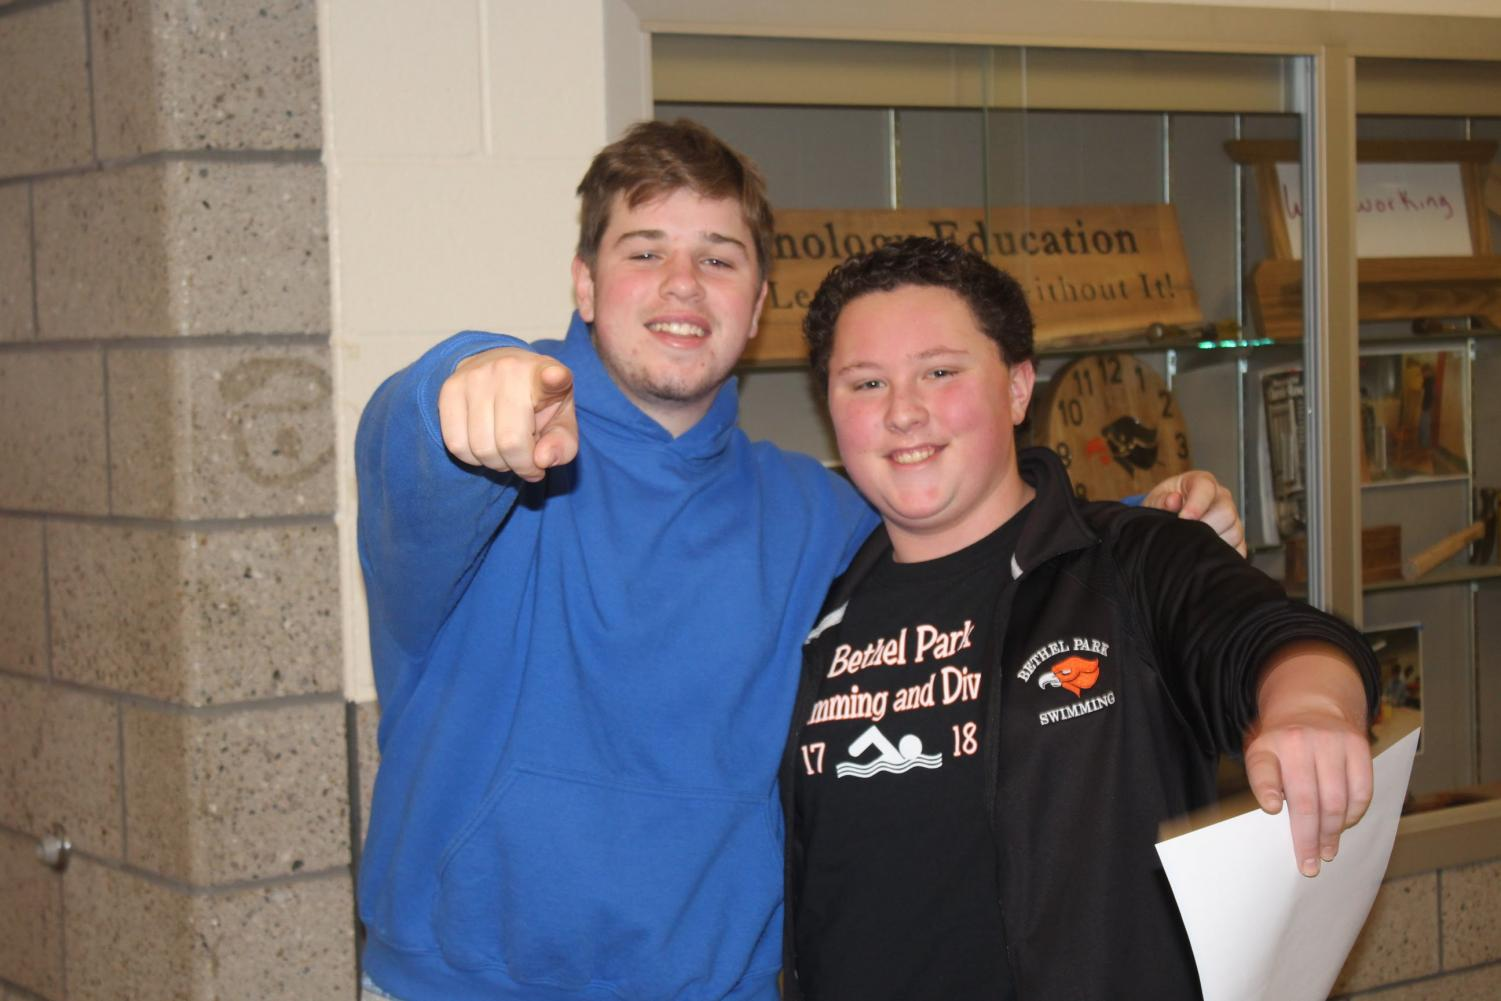 Senior Jake Thimons and junior Mark Vighetti want you to get involved at BPHS.